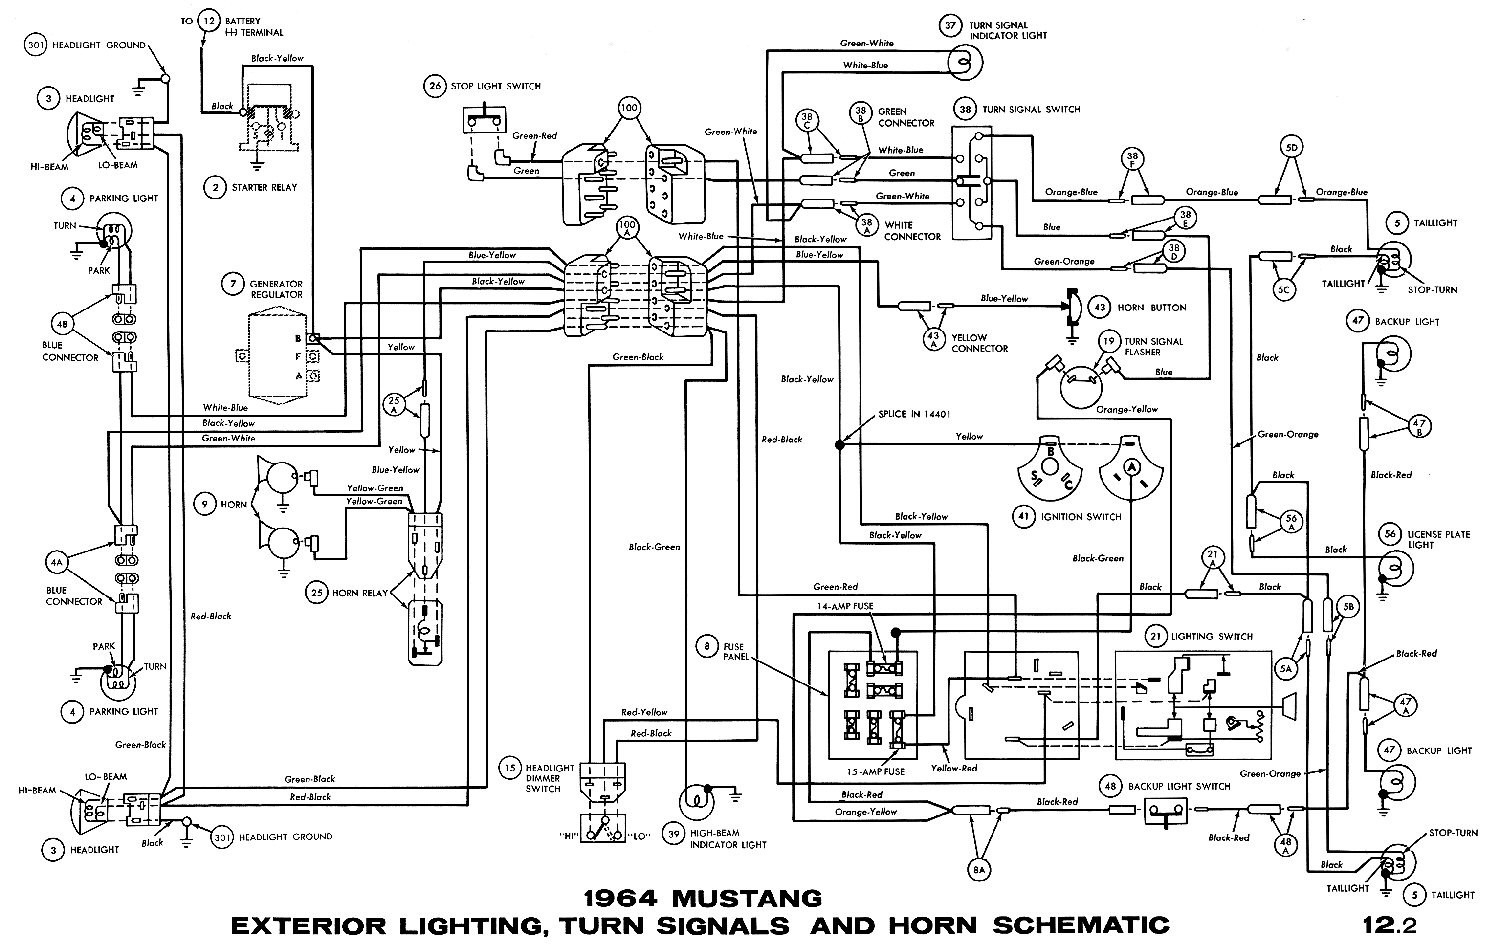 1965 mustang ignition wiring diagram Collection-1965 Mustang Wiring Diagram New 1965 Mustang Wiring Diagrams Average Joe Restoration for Alluring 13-k